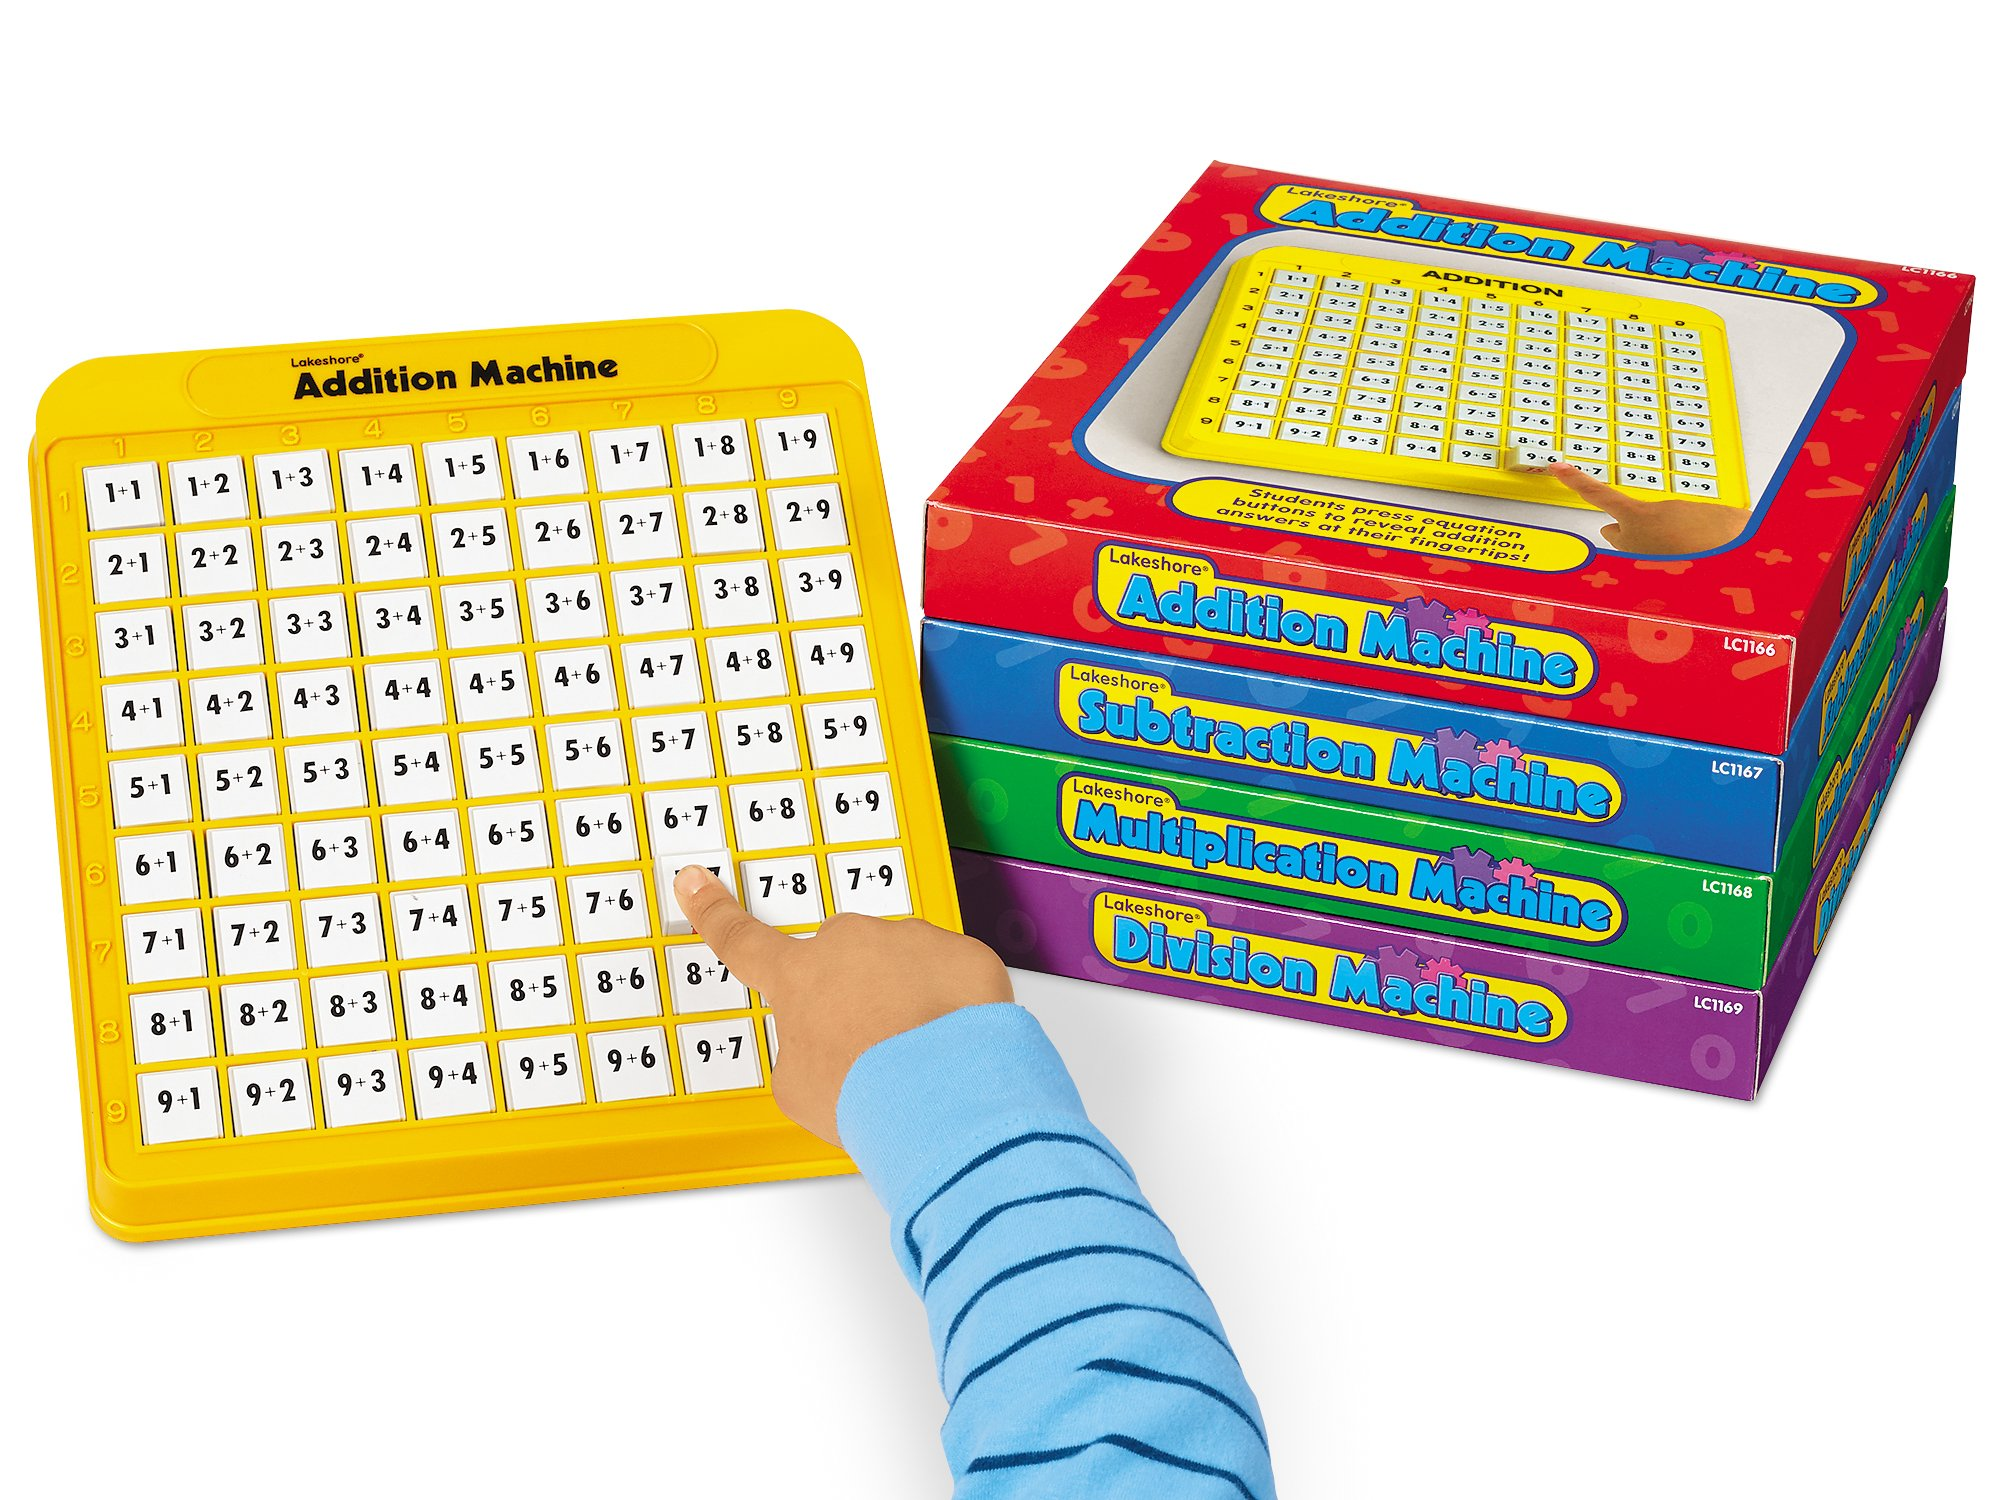 Lakeshore Self-Teaching Math Machines - Set of 4 by Lakeshore Learning Materials